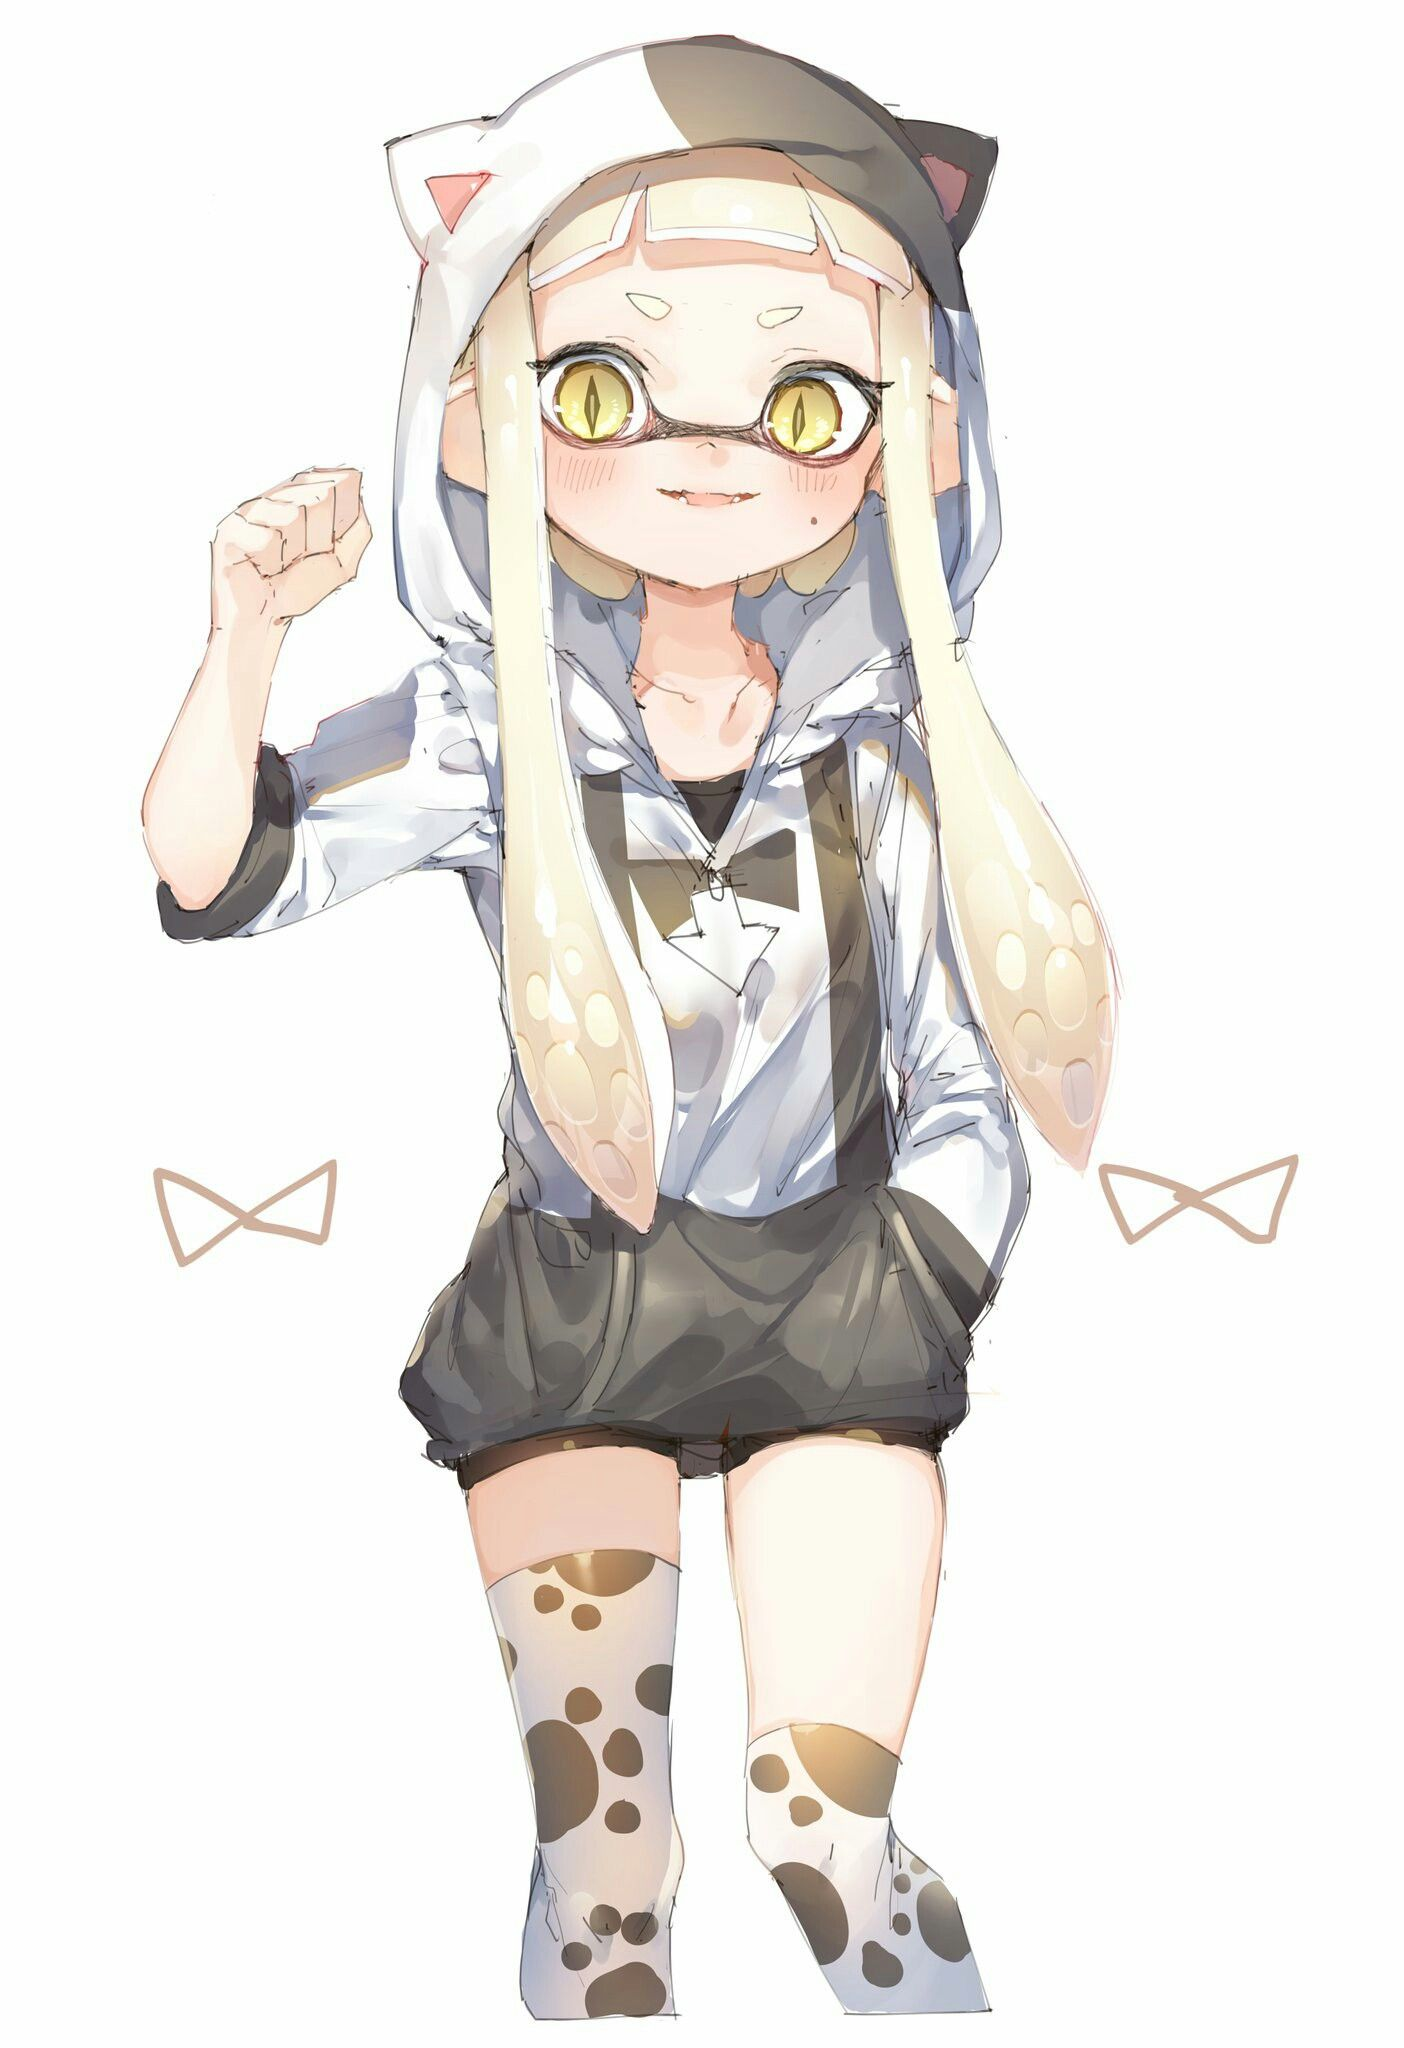 Inkling Splatoon Pinterest Nintendo, Anime and Manga